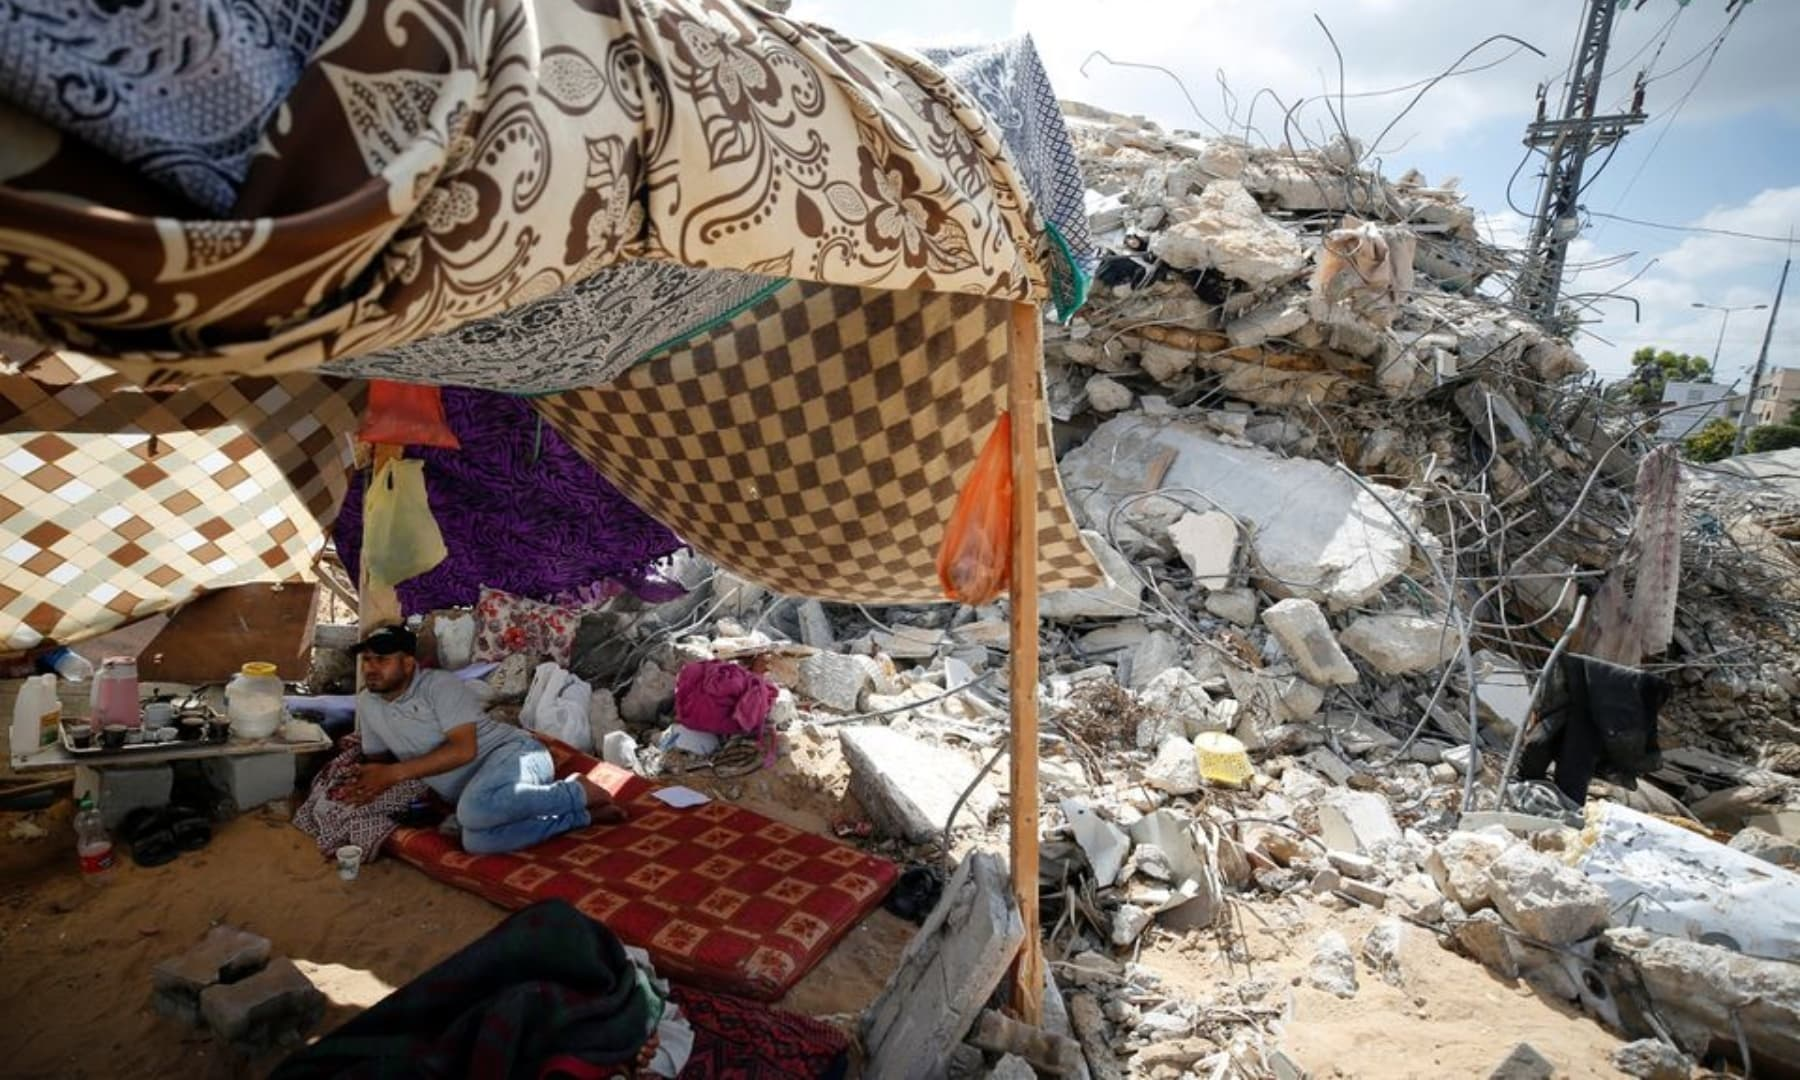 A Palestinian man sits in a makeshift tent amid the rubble of their houses which were destroyed by Israeli air strikes during the Israeli attacks on Gaza, May 23, 2021. — Reuters